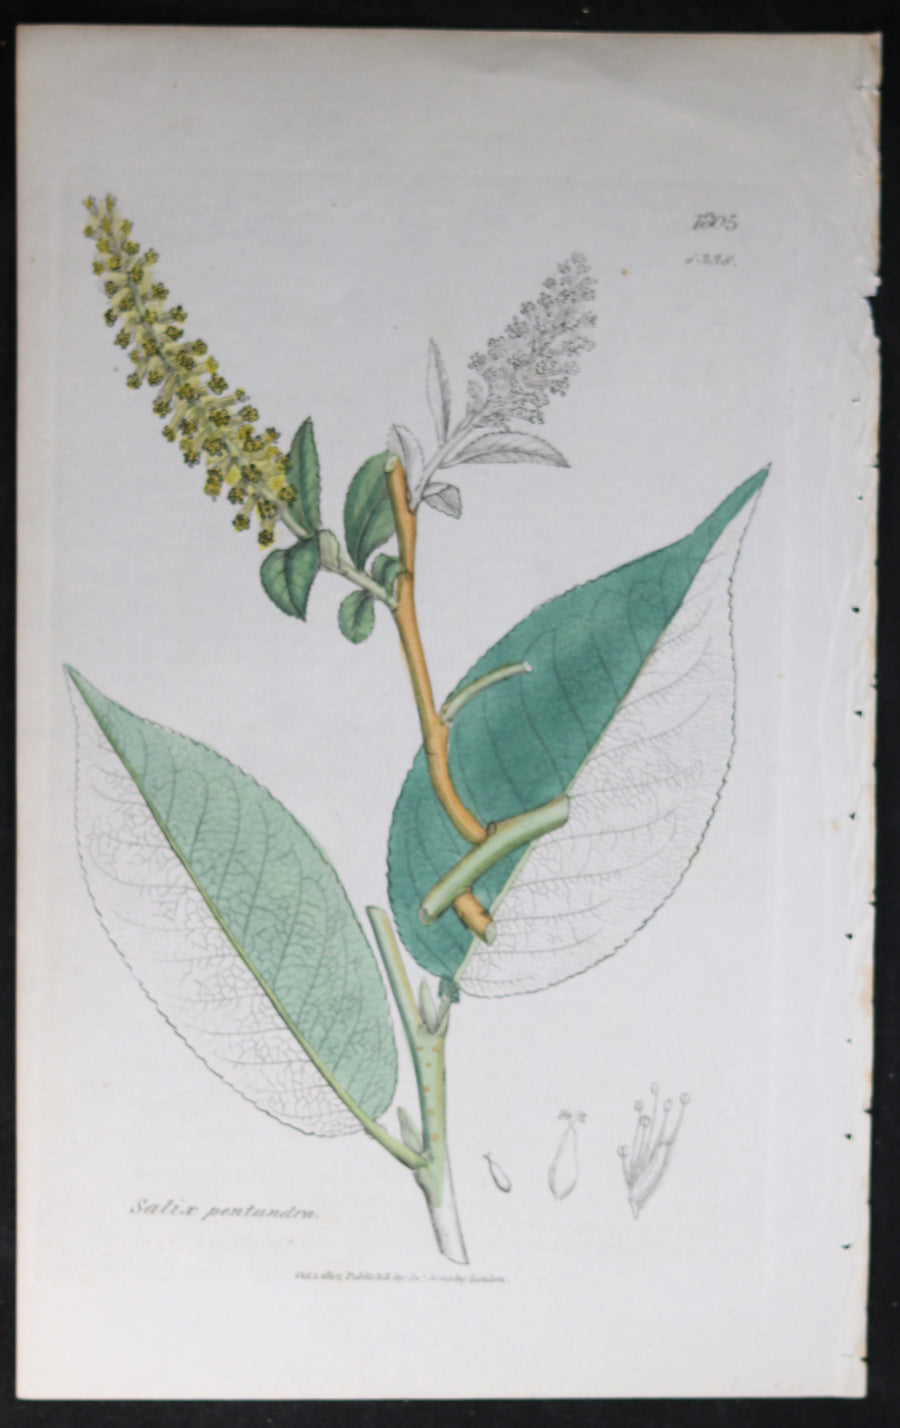 @1807 Sowerby botanical print Laurel Willow